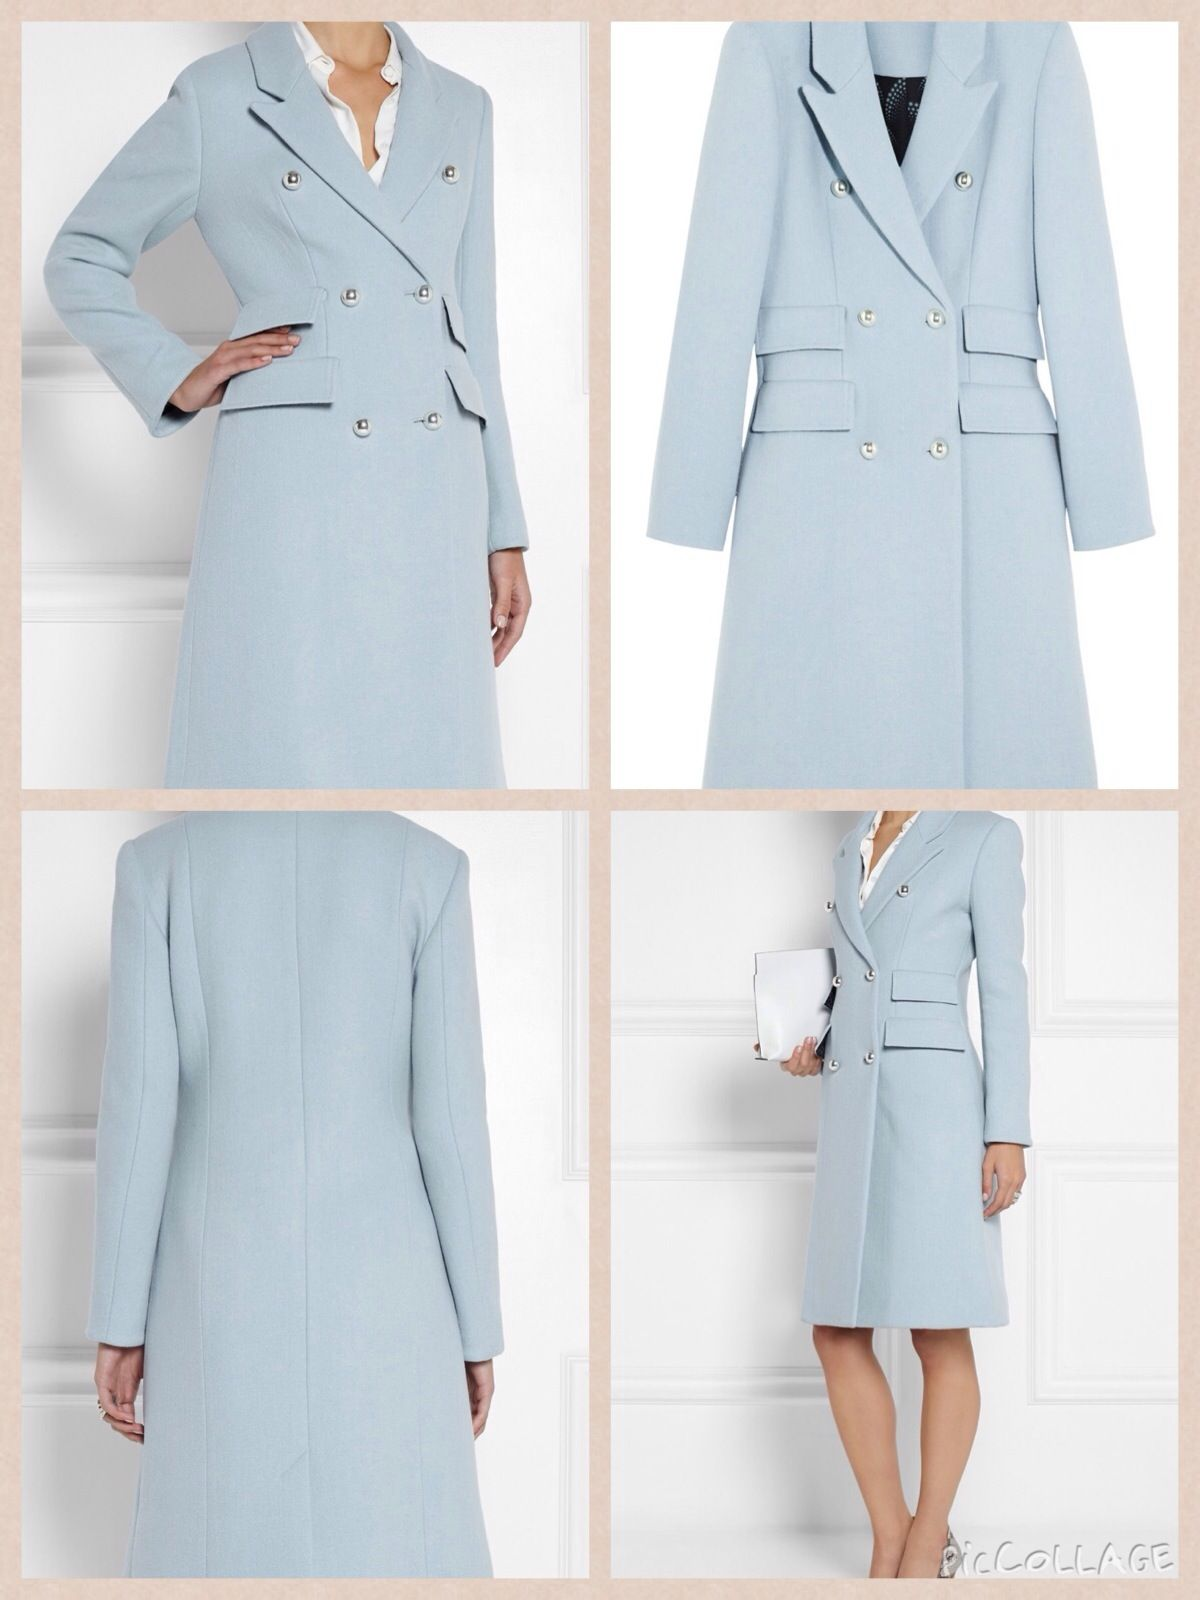 November 8, 2014 - Kate wore Matthew Williamson's 'wool blend coat' in a soft blue color. The fitted piece features double-breasted styling, multiple flap pockets, peak lapels and bright silver buttons.  The coat is available at Net-a-Porter, where it is selling at $2650.  The coat is also offered at Flannels. That retailer is selling the piece for $1920.